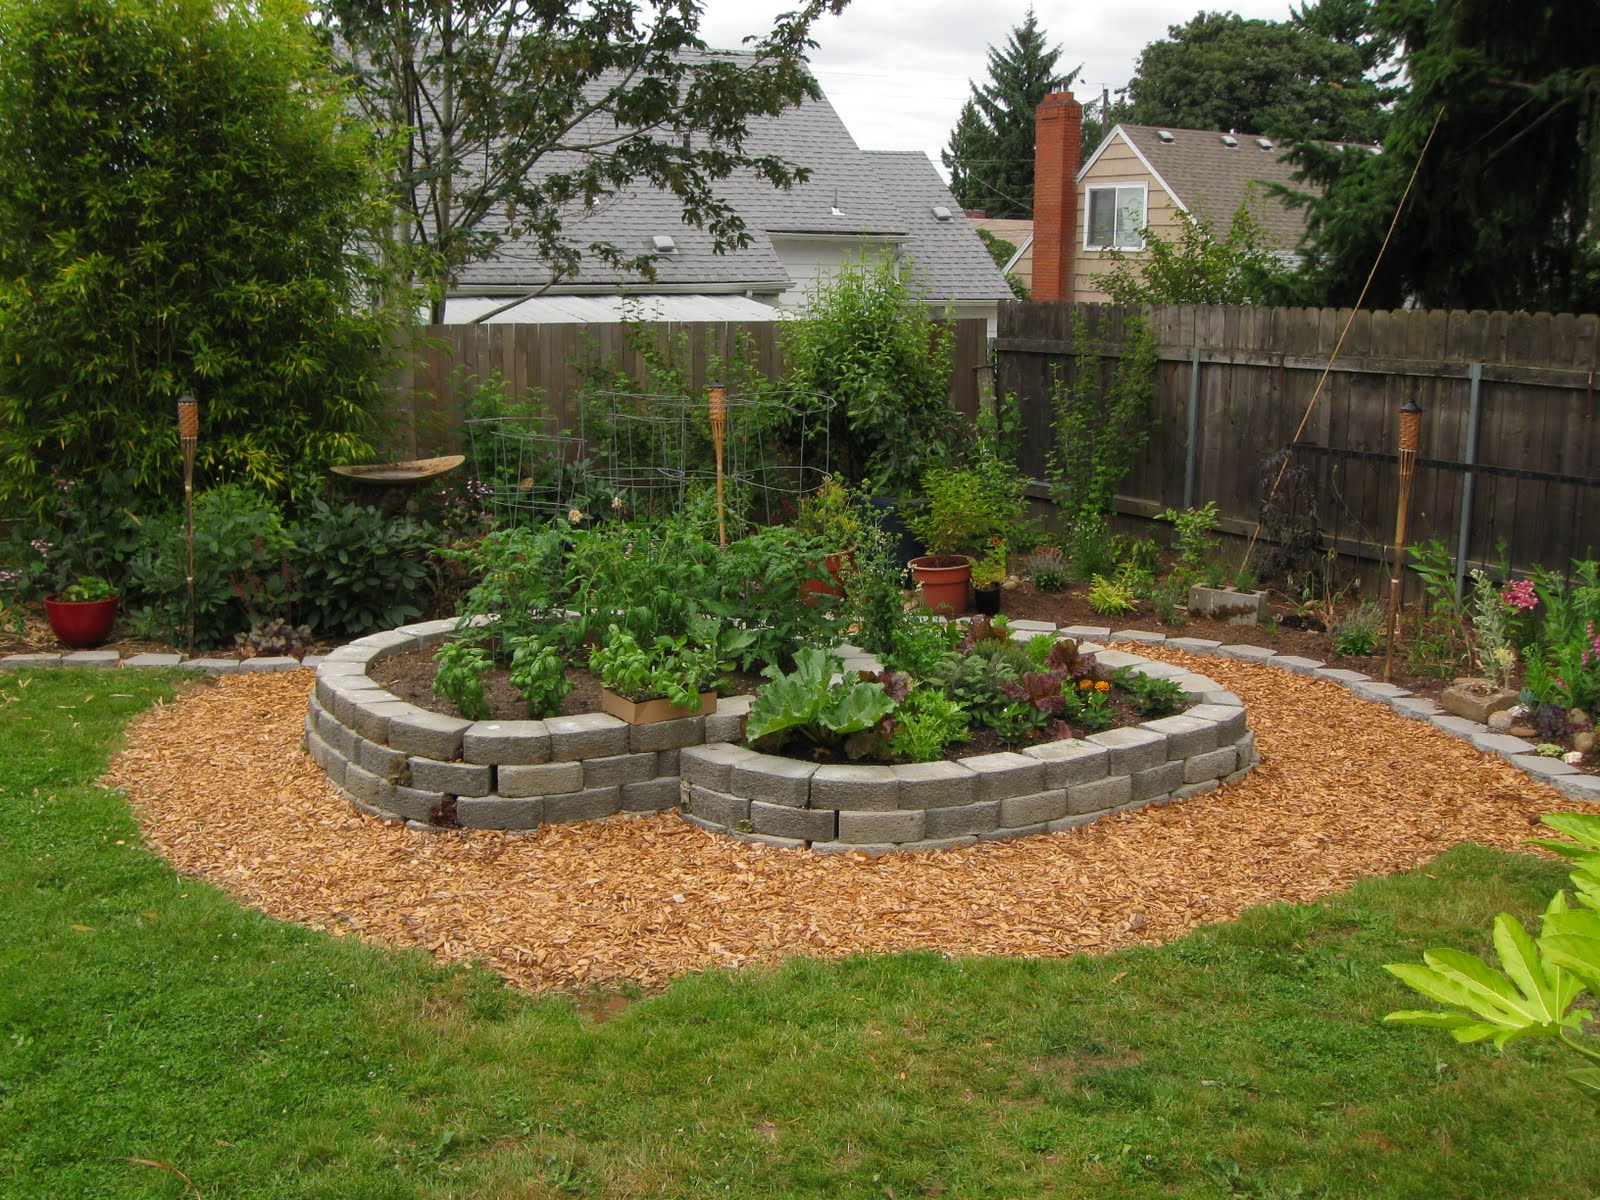 Simple landscaping ideas with low maintenance design and for Basic landscaping